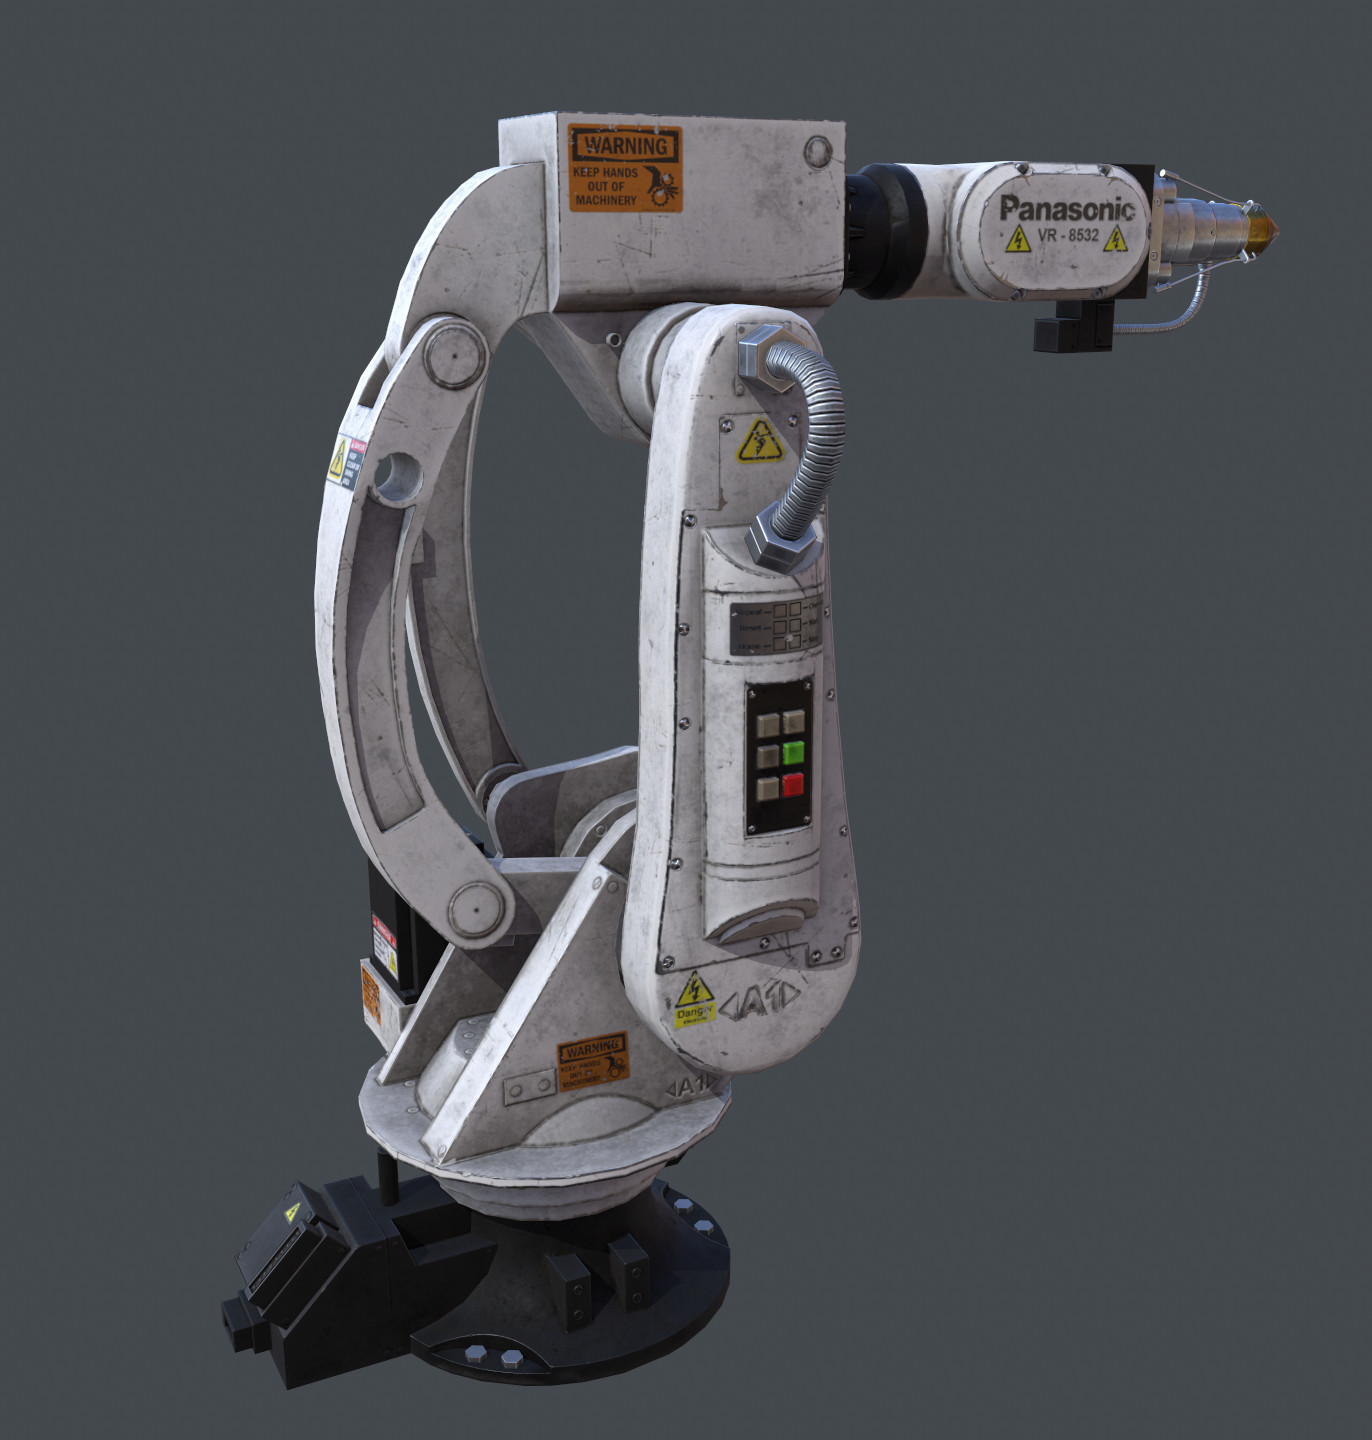 machine extends robotic arms - HD1372×1440